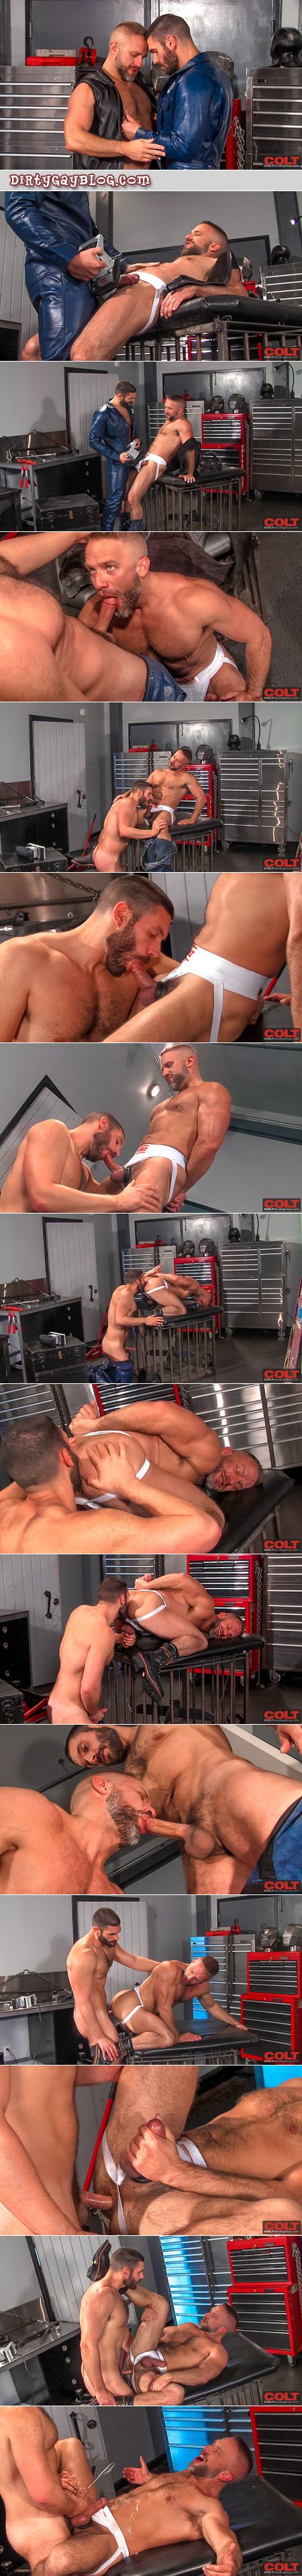 Butch, hairy mechanics fuck in their jockstraps in the garage and shoot their huge cumshots all over each other.